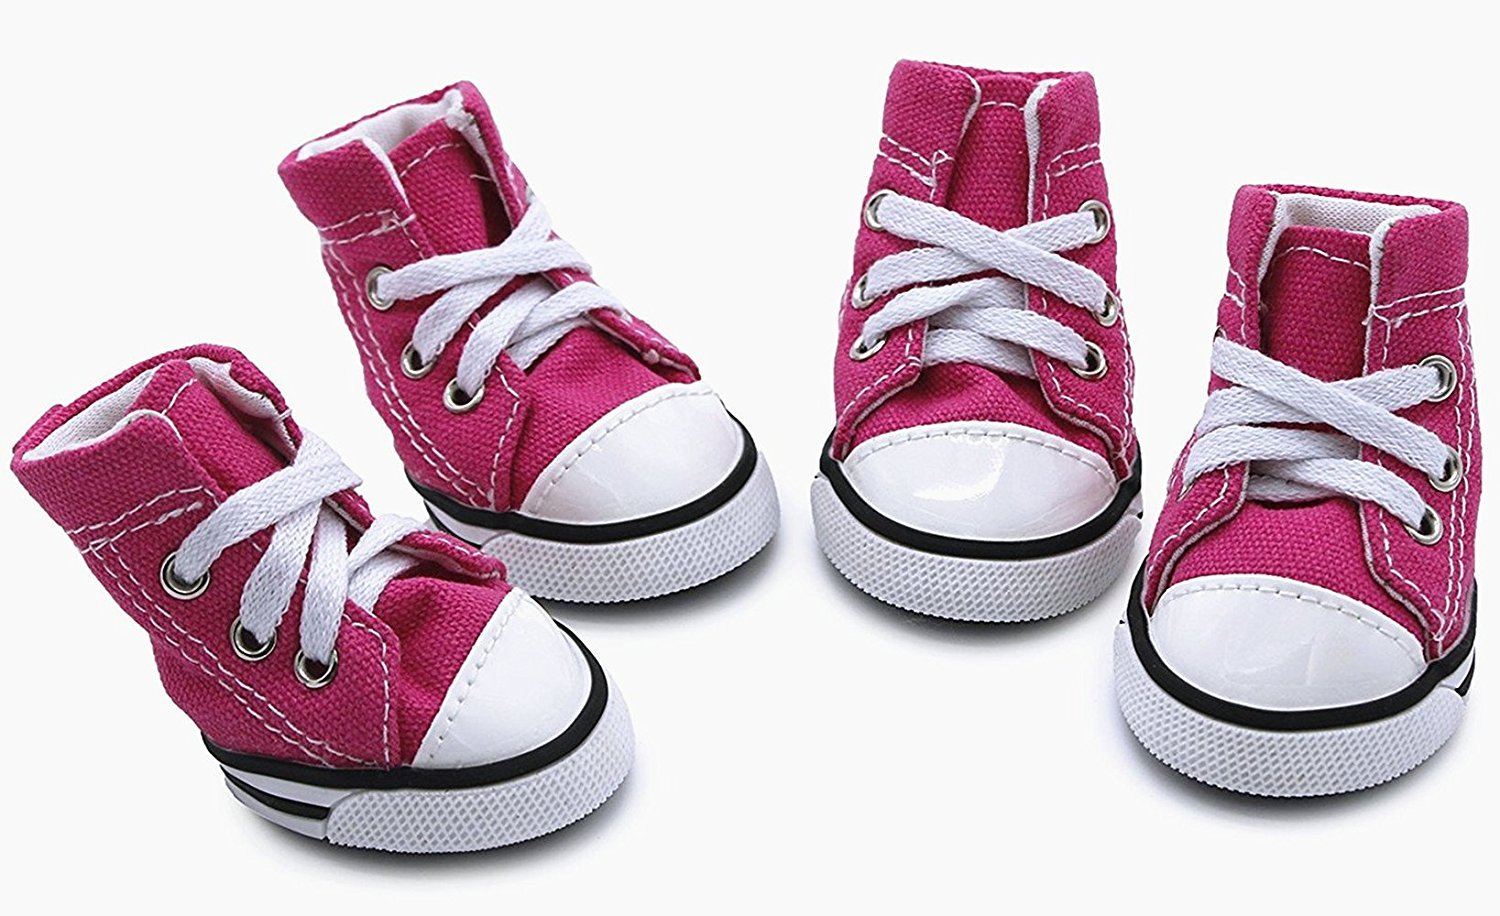 abcGoodefg Pet Dog Puppy Canvas Sport Shoes Sneaker Boots, Outdoor Nonslip Causal Shoes, Rubber Sole+Soft Cotton Inner Fabric (Pink, 2)